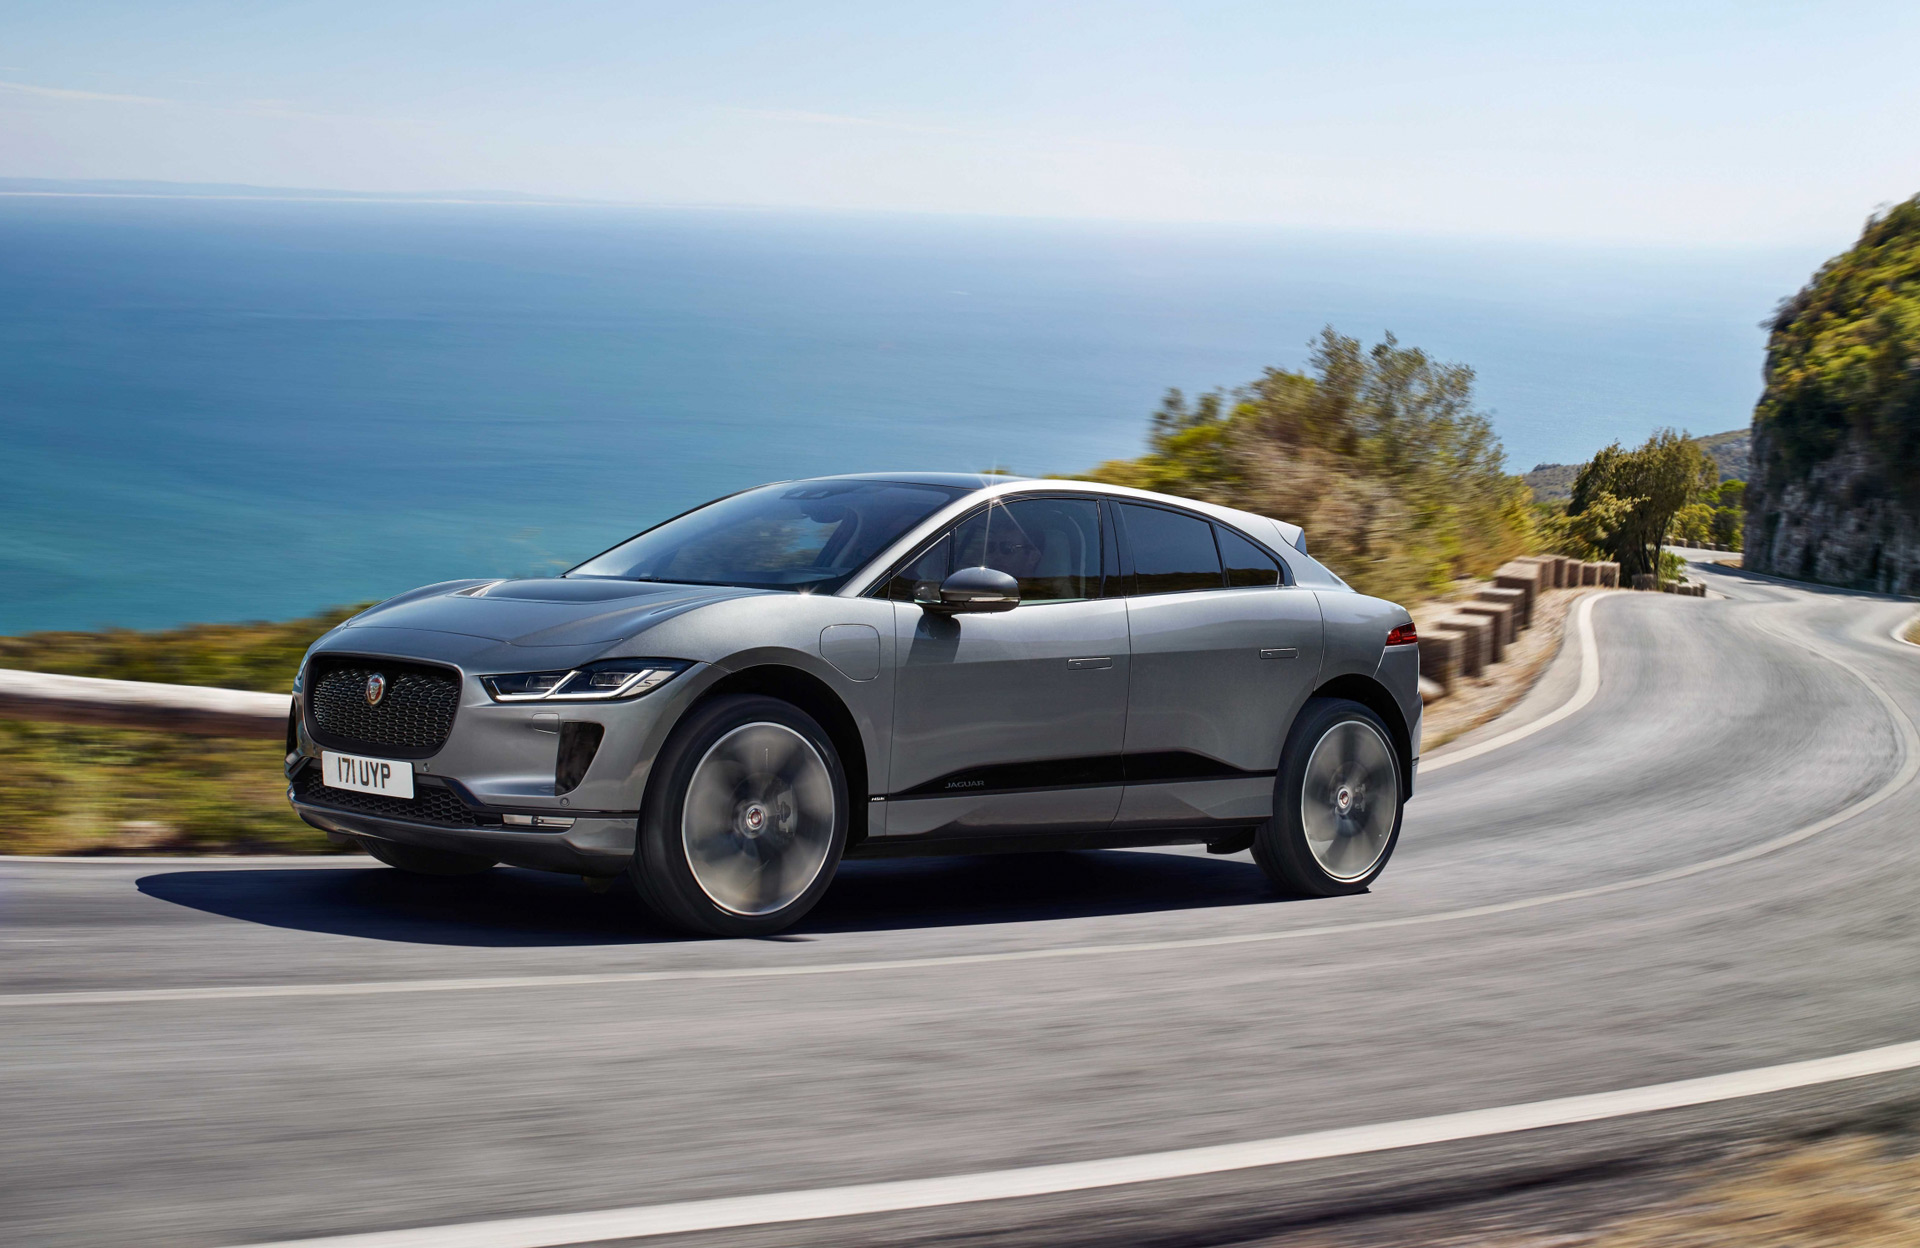 2021 Jaguar i-Pace Electric SUV, India launch end this-year